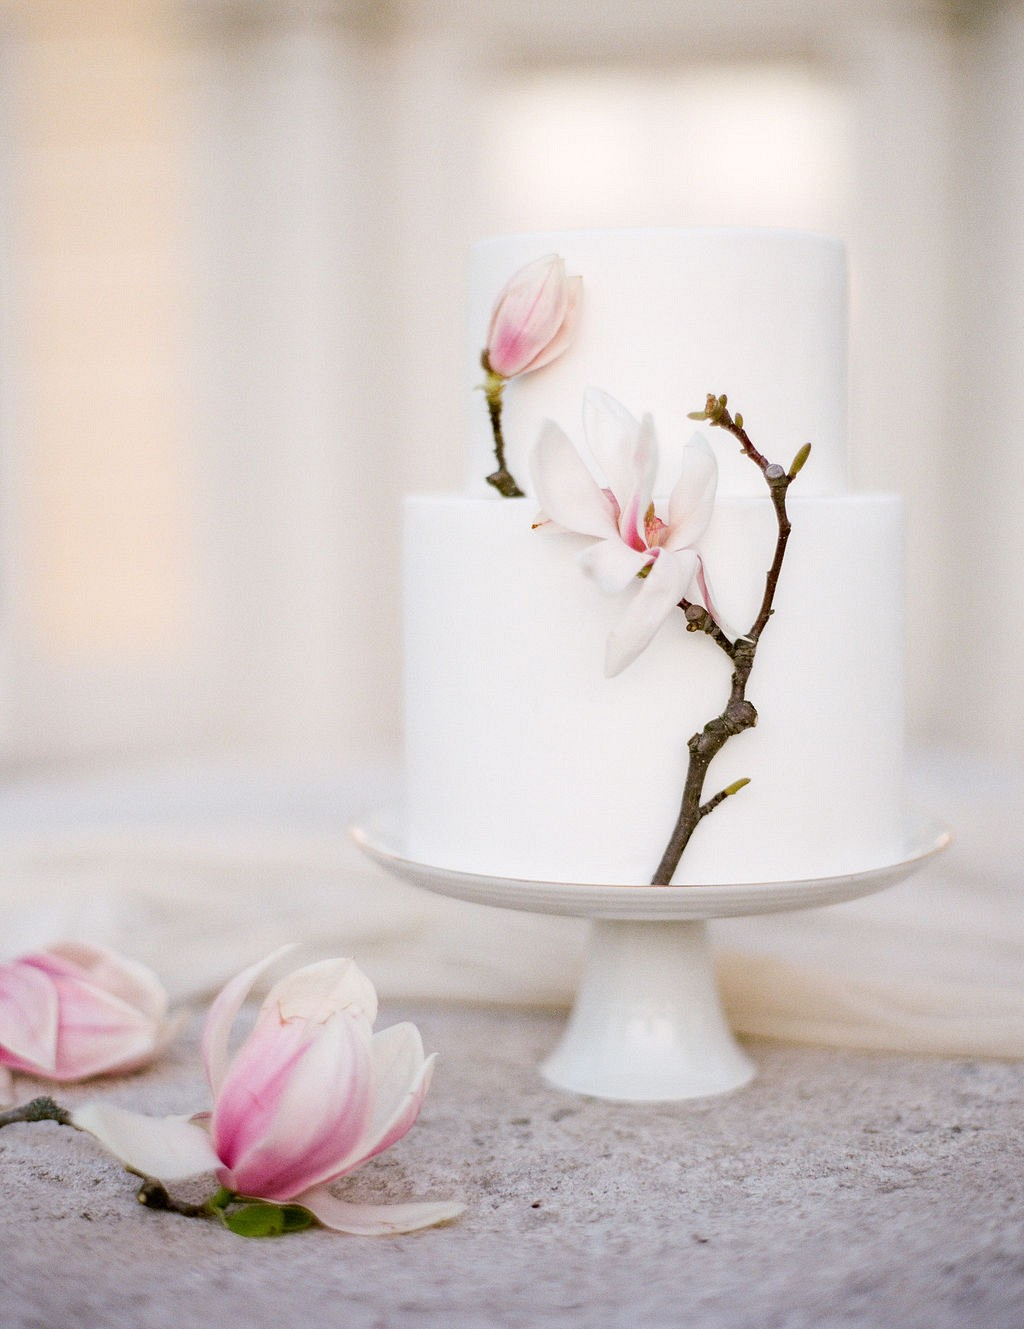 Magnolia - Seasonal Florals to Use in Your Bouquet